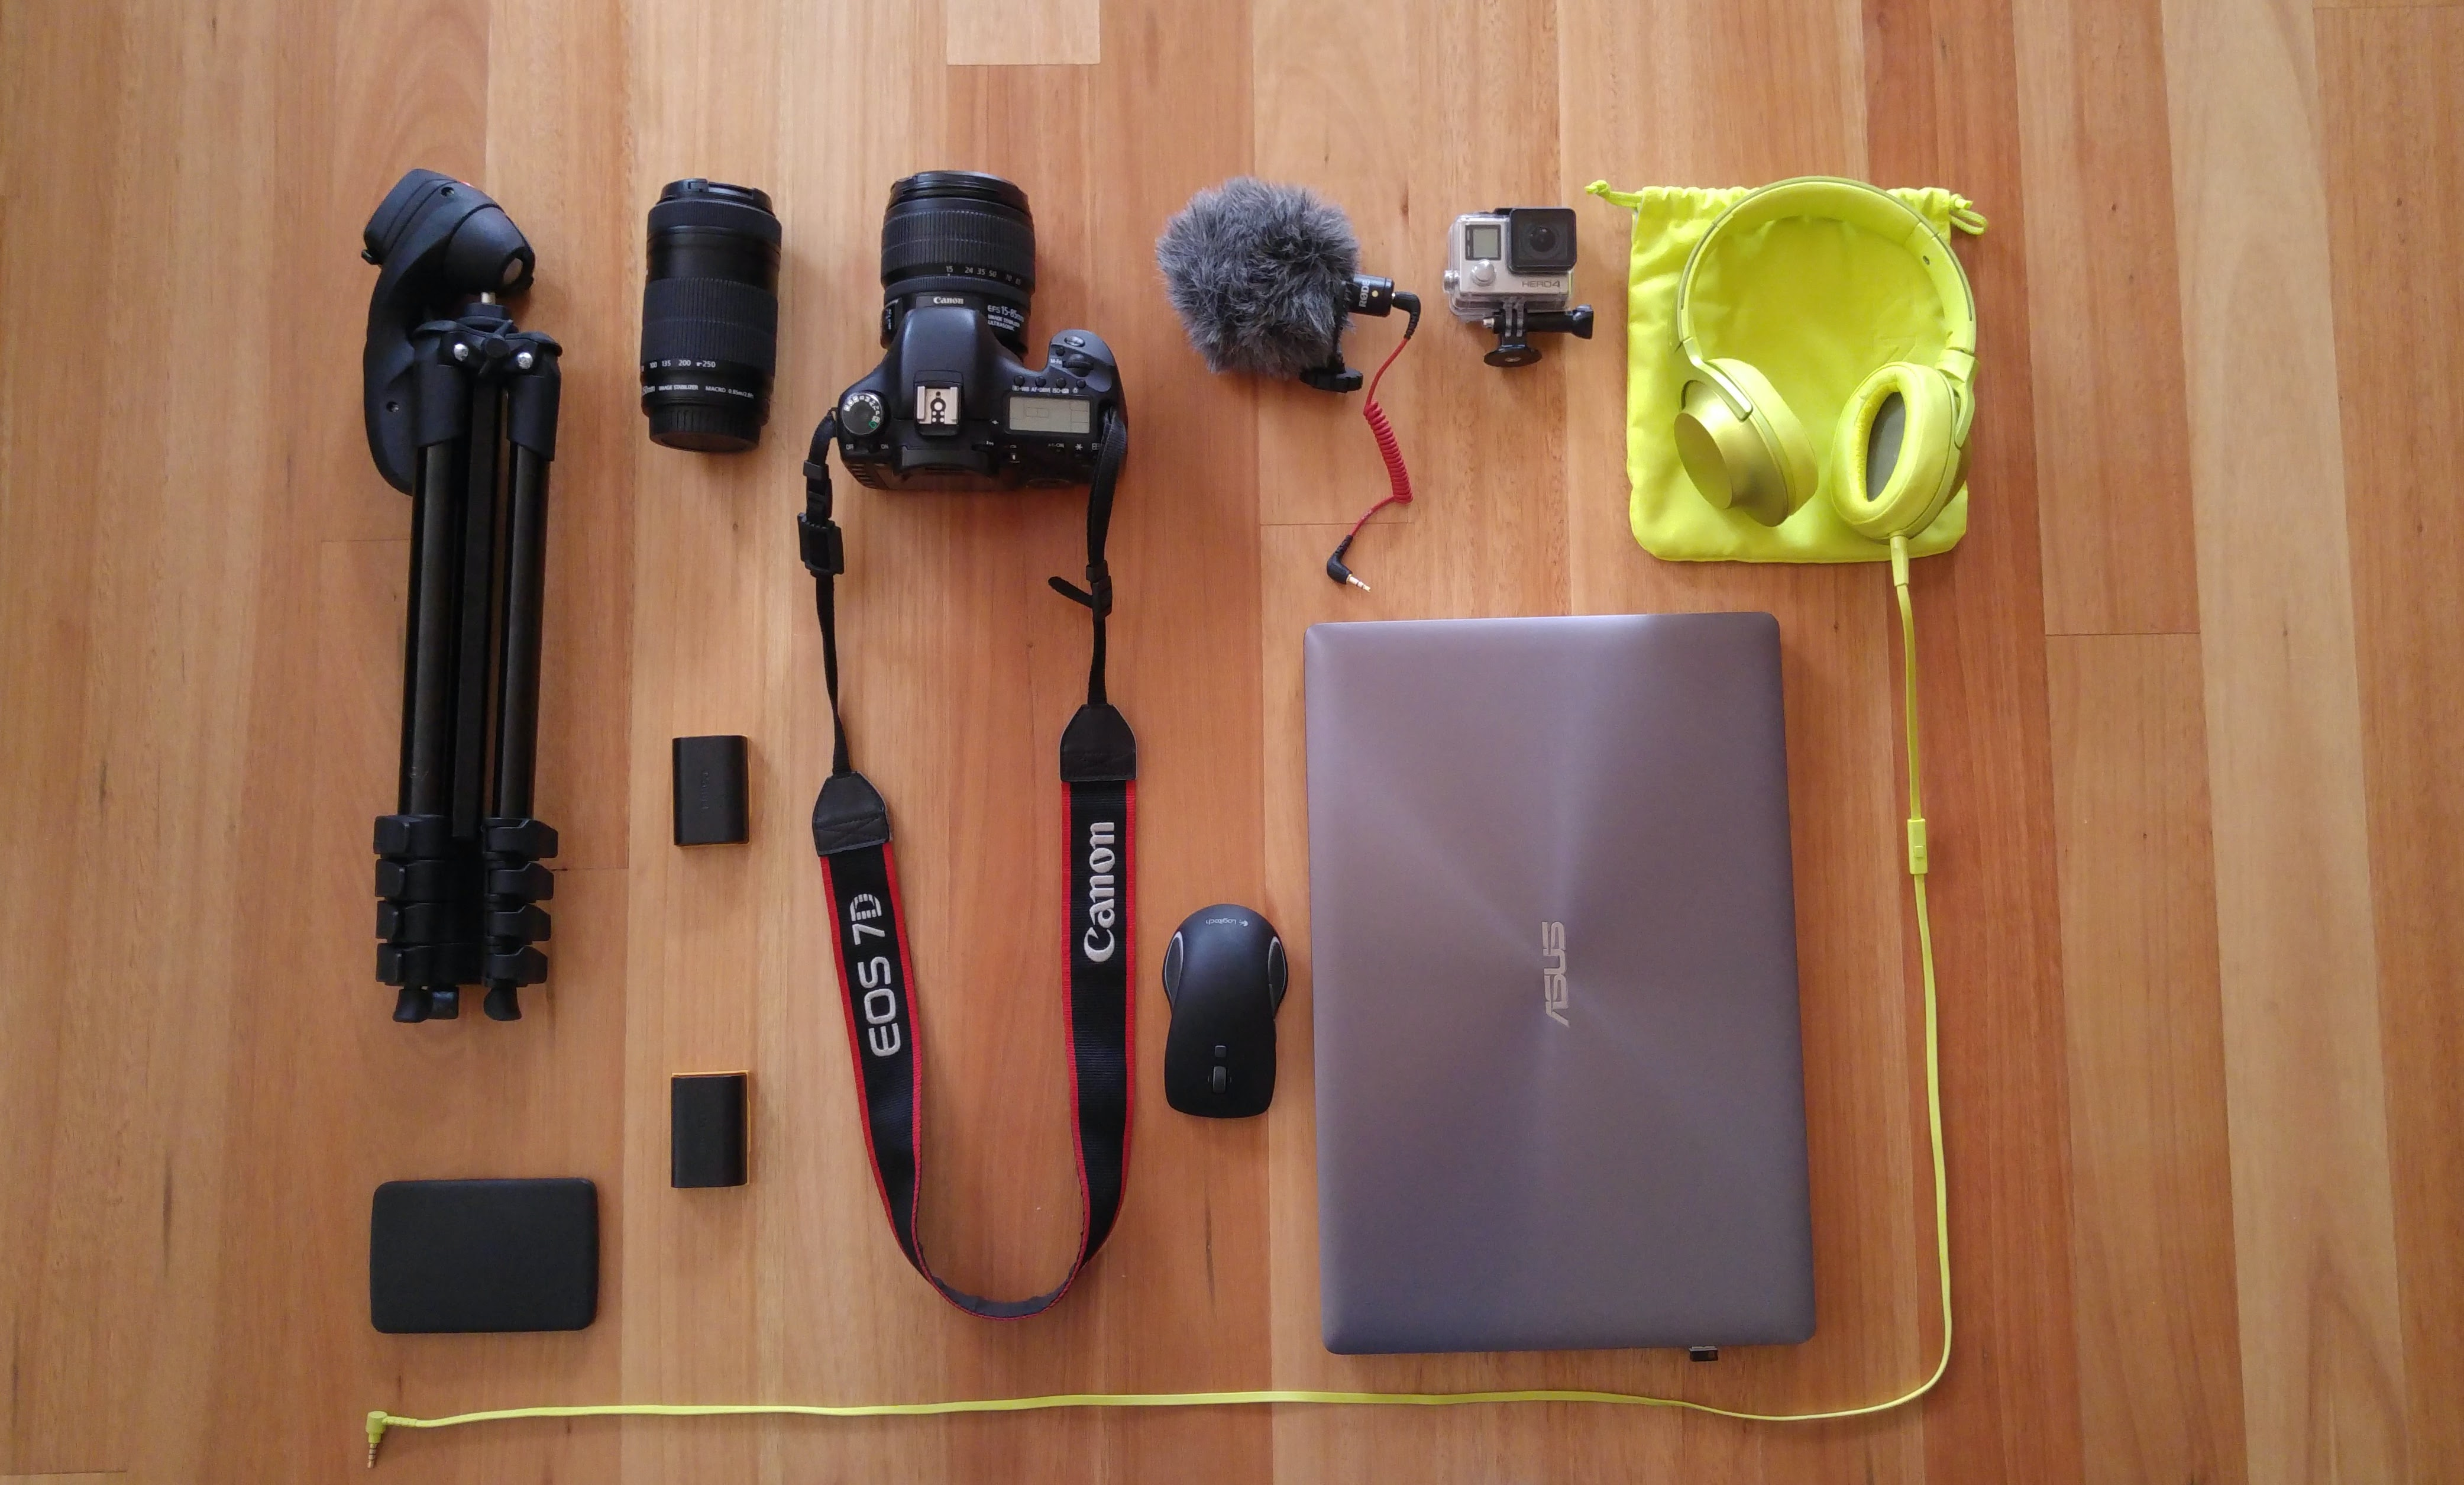 A flatlay image of photography equipment, headphones and a laptop on the floor.